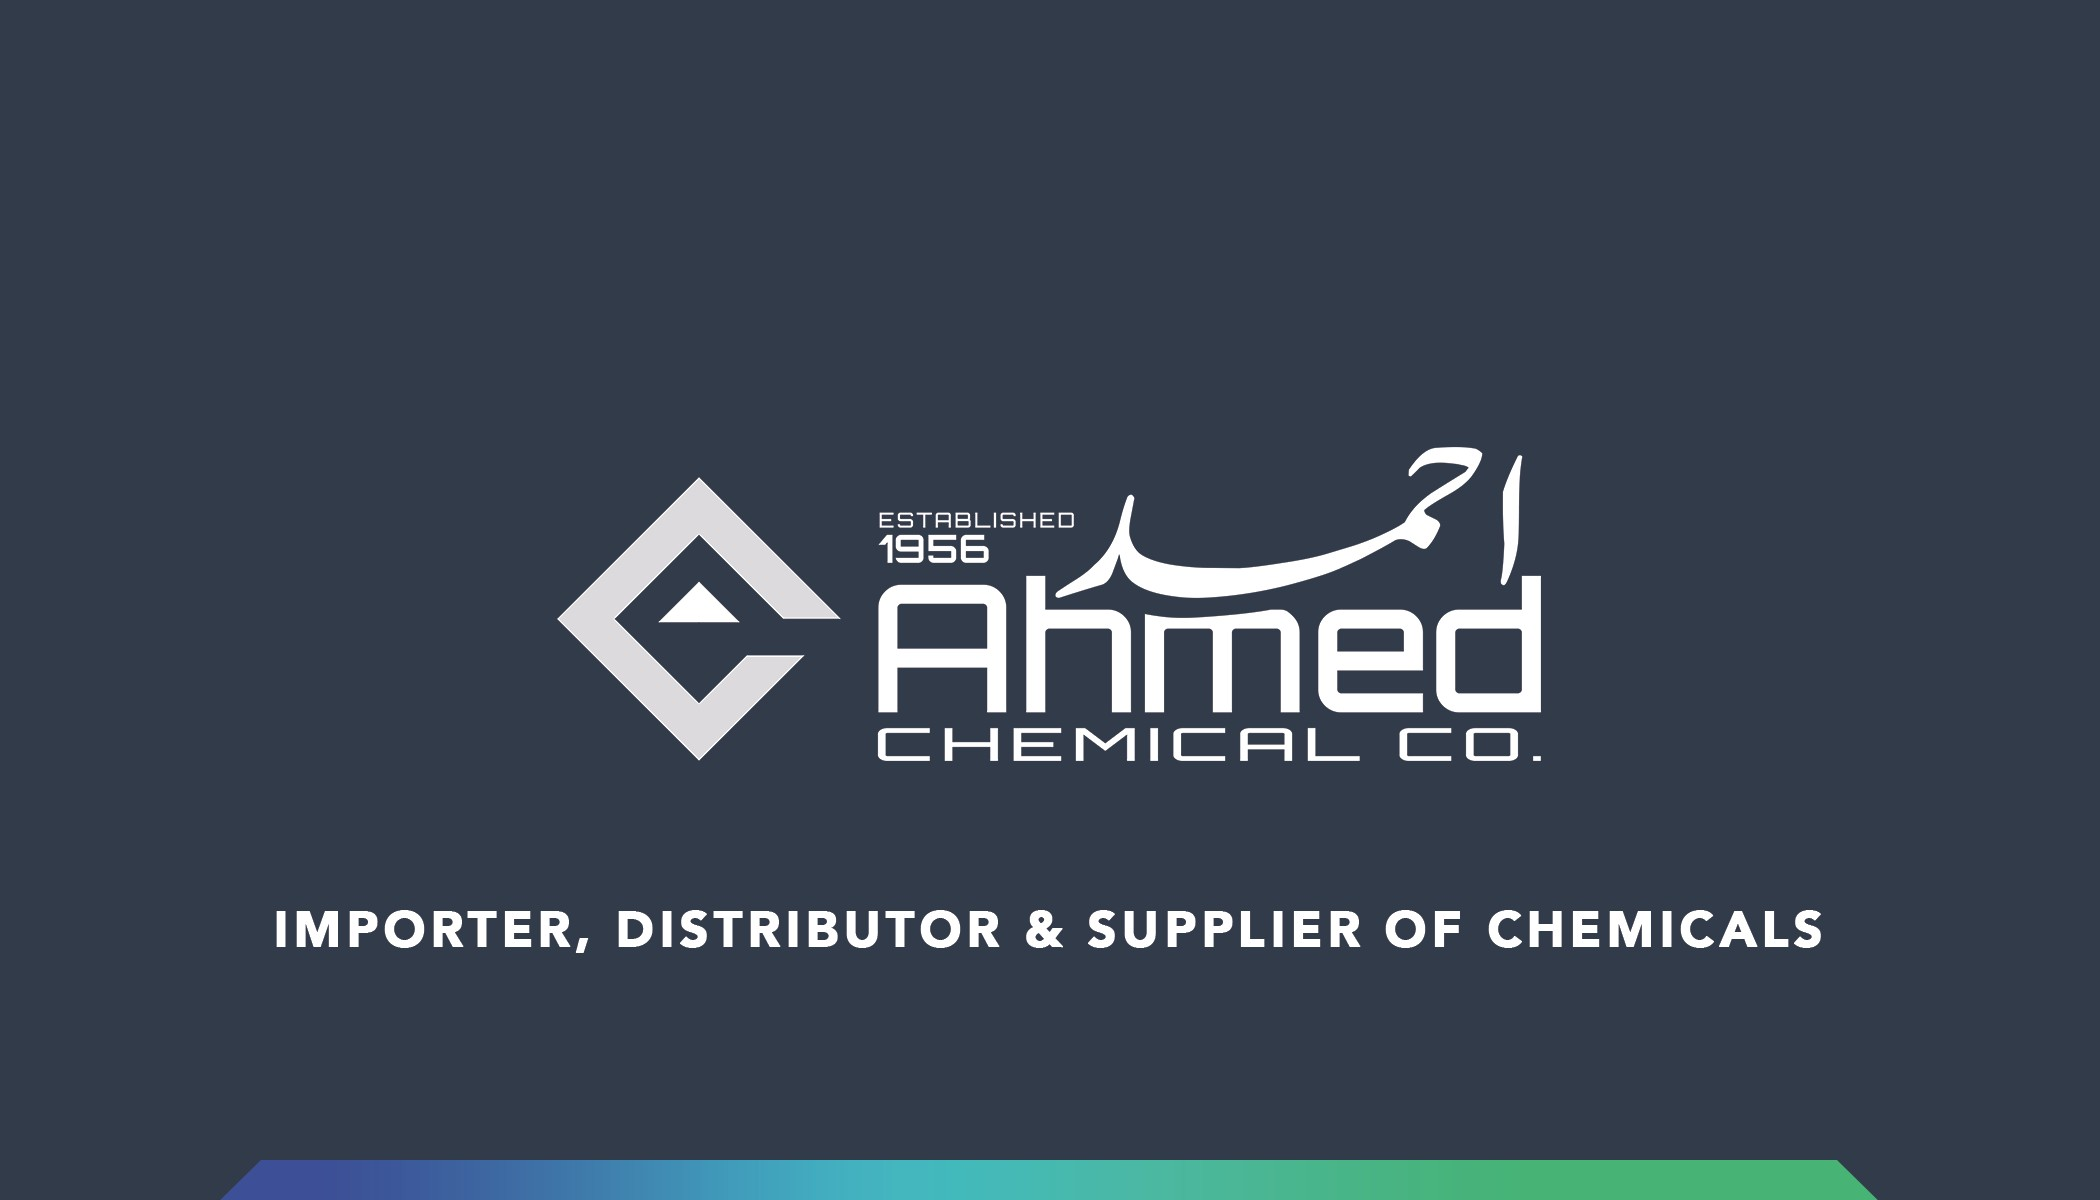 Ahmed Chemical Co  | LinkedIn